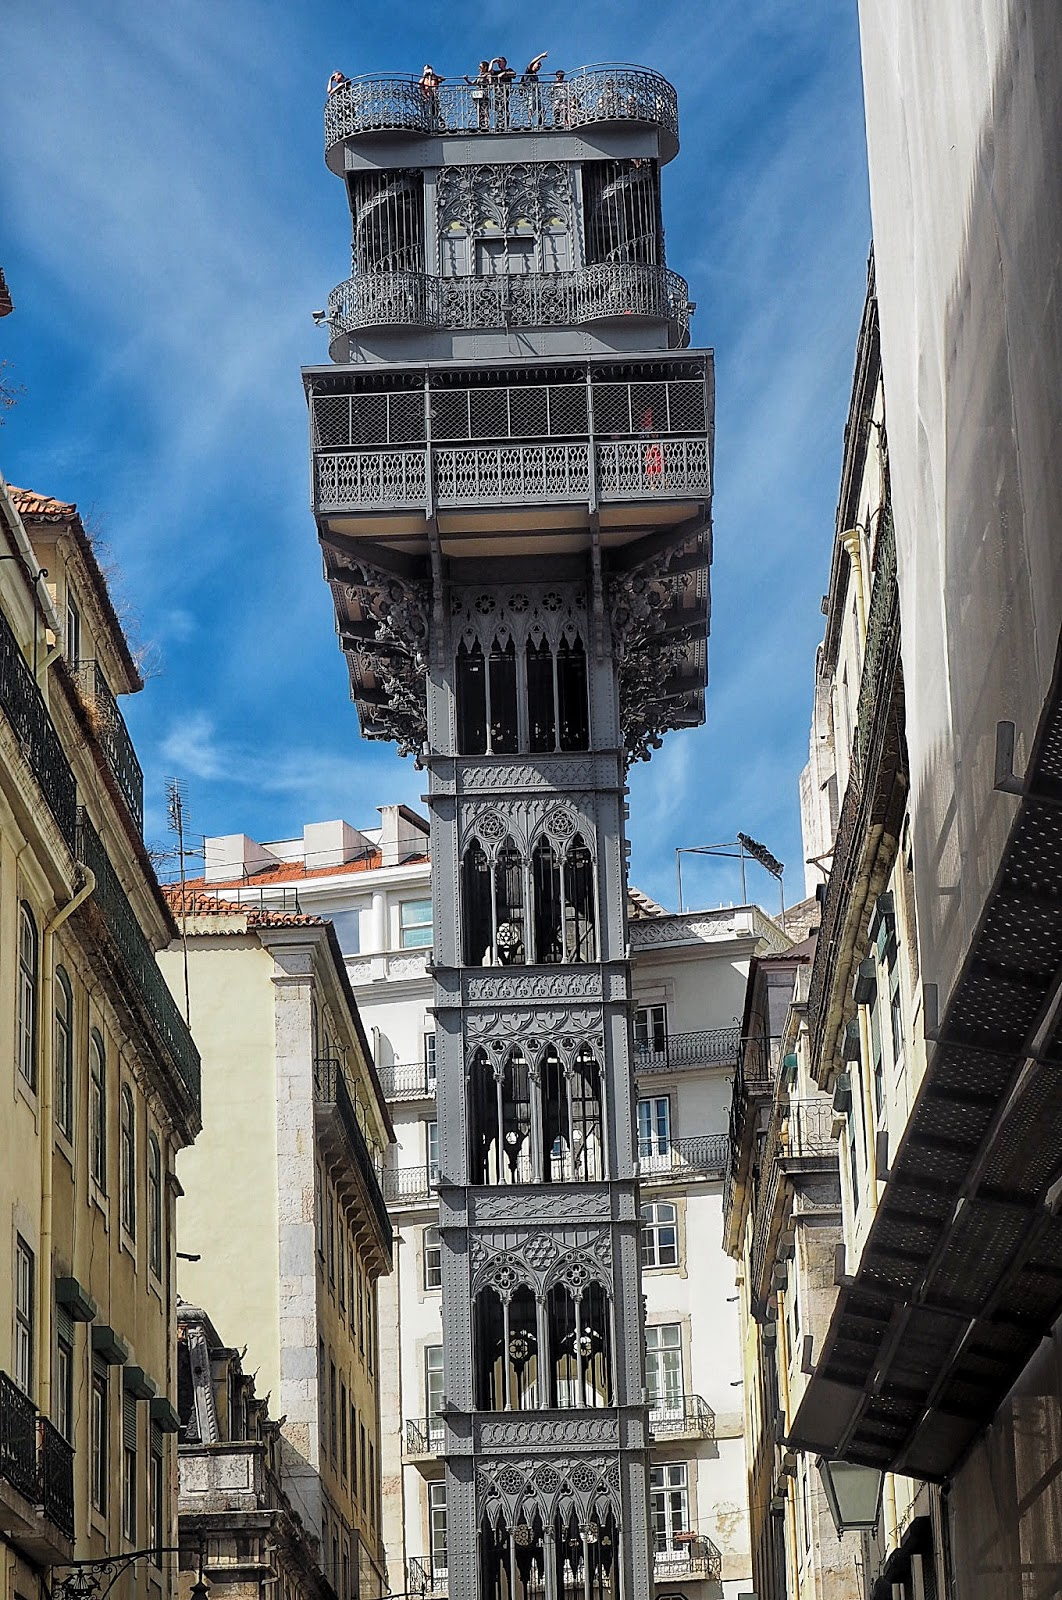 Looking up at the magnificent Santa Justa Lift